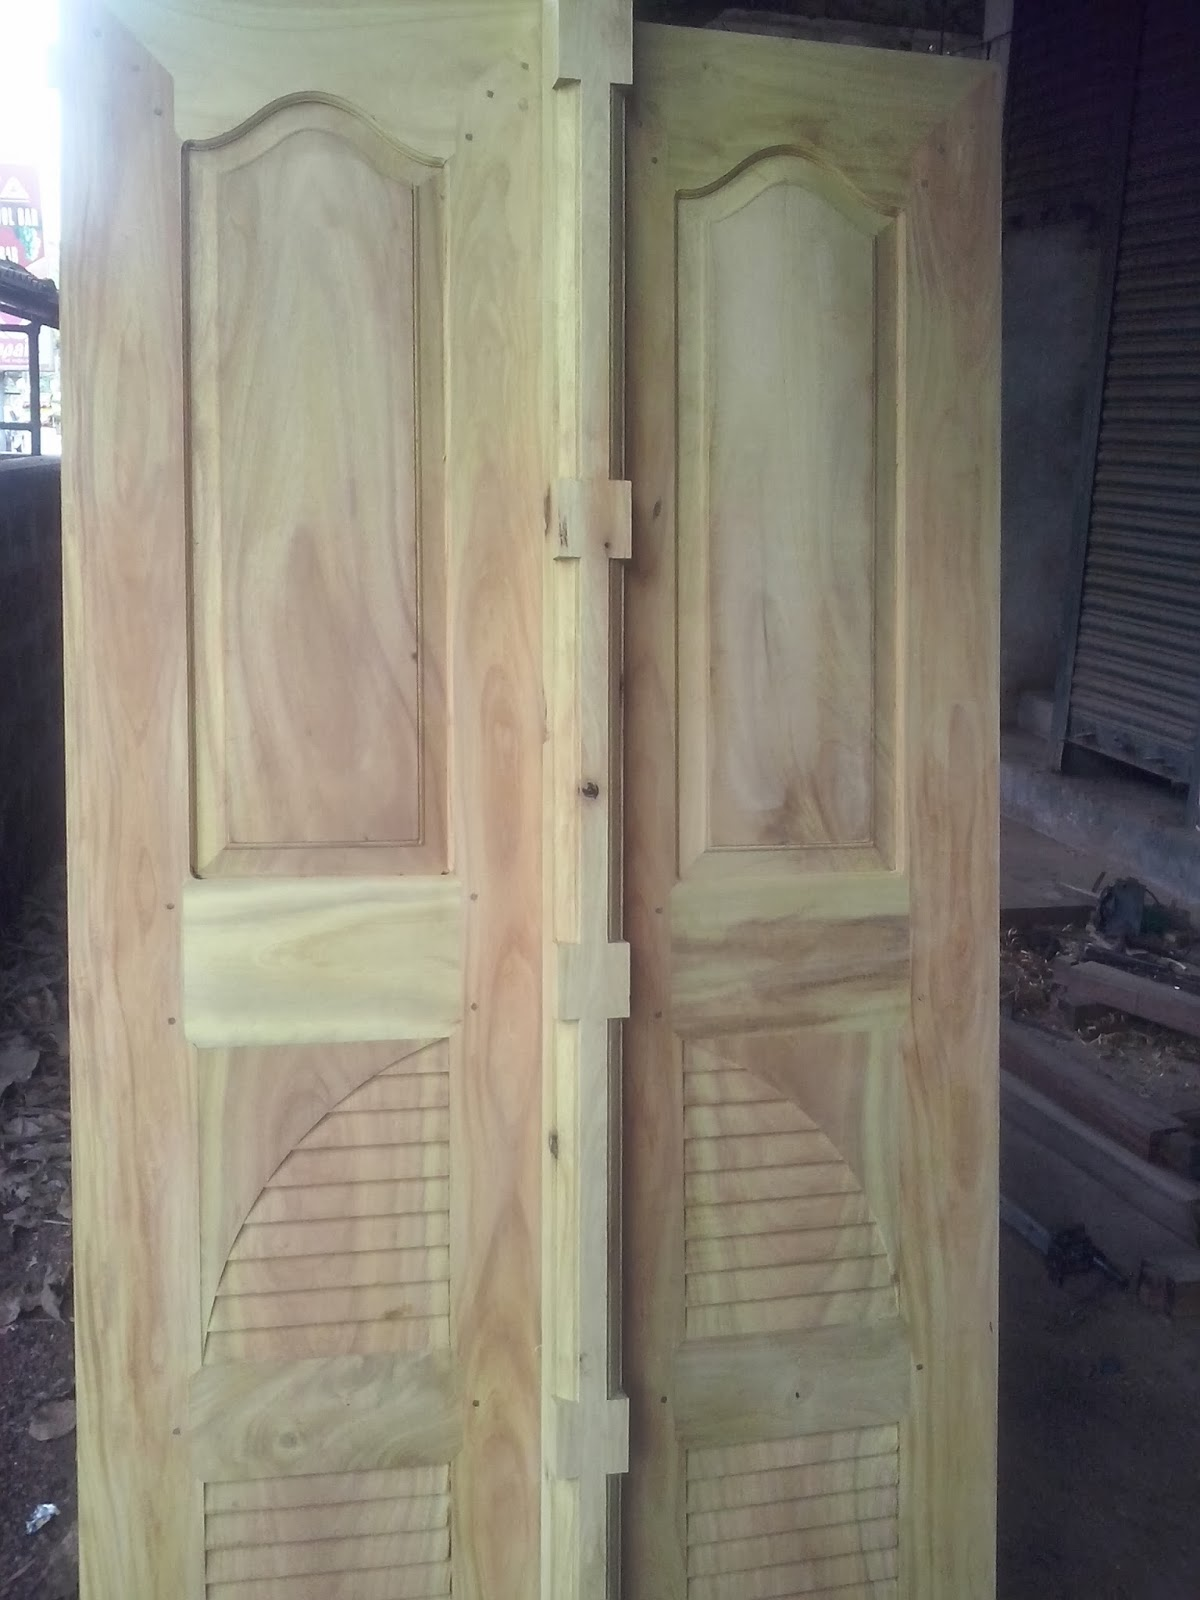 Bavas wood works main entrance wooden double door designs for Wooden door designs for main door